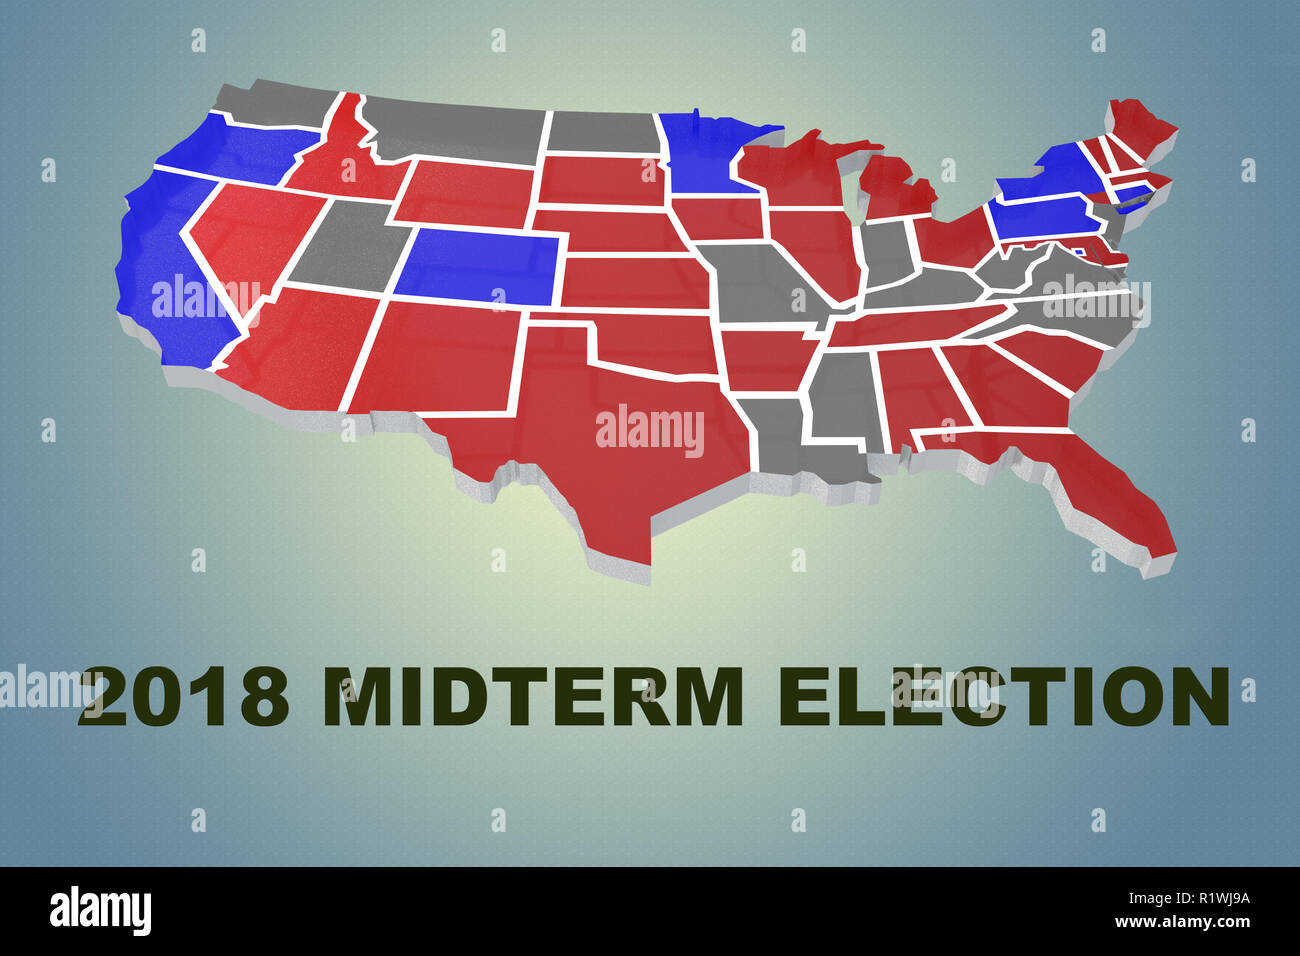 3D illustration of 2018 MIDTERM ELECTION script under an embossment of the United States of America - Stock Image